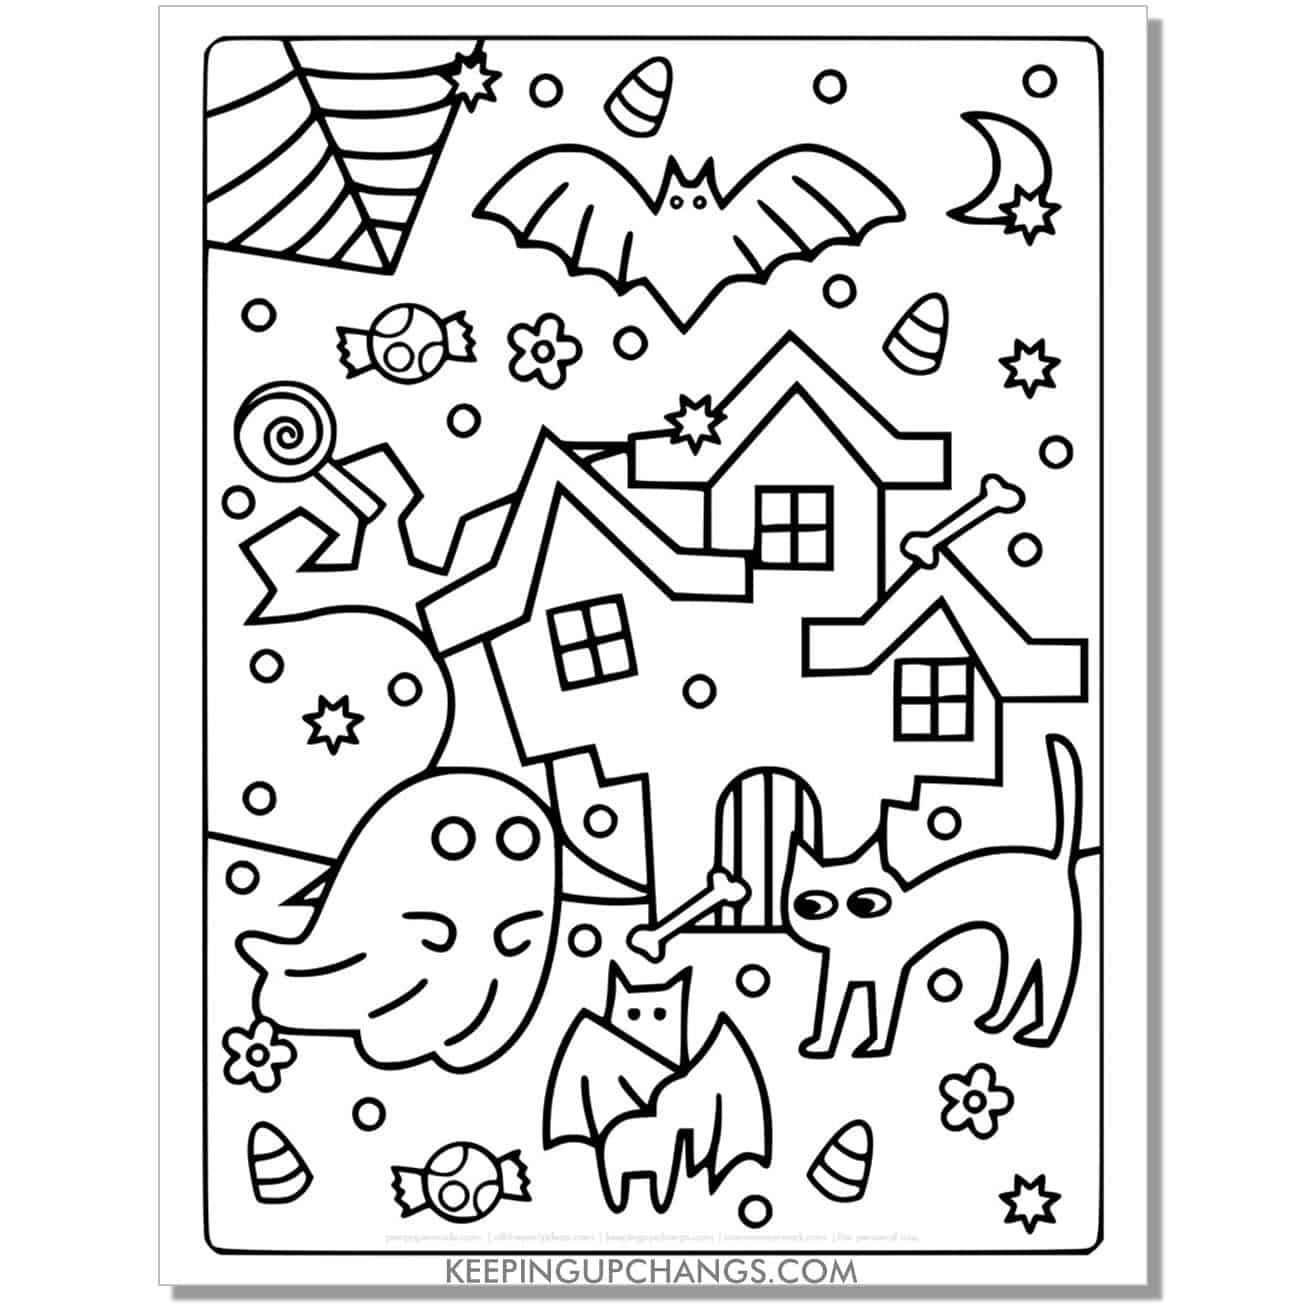 full size halloween cat, ghost, bat, haunted house coloring page.